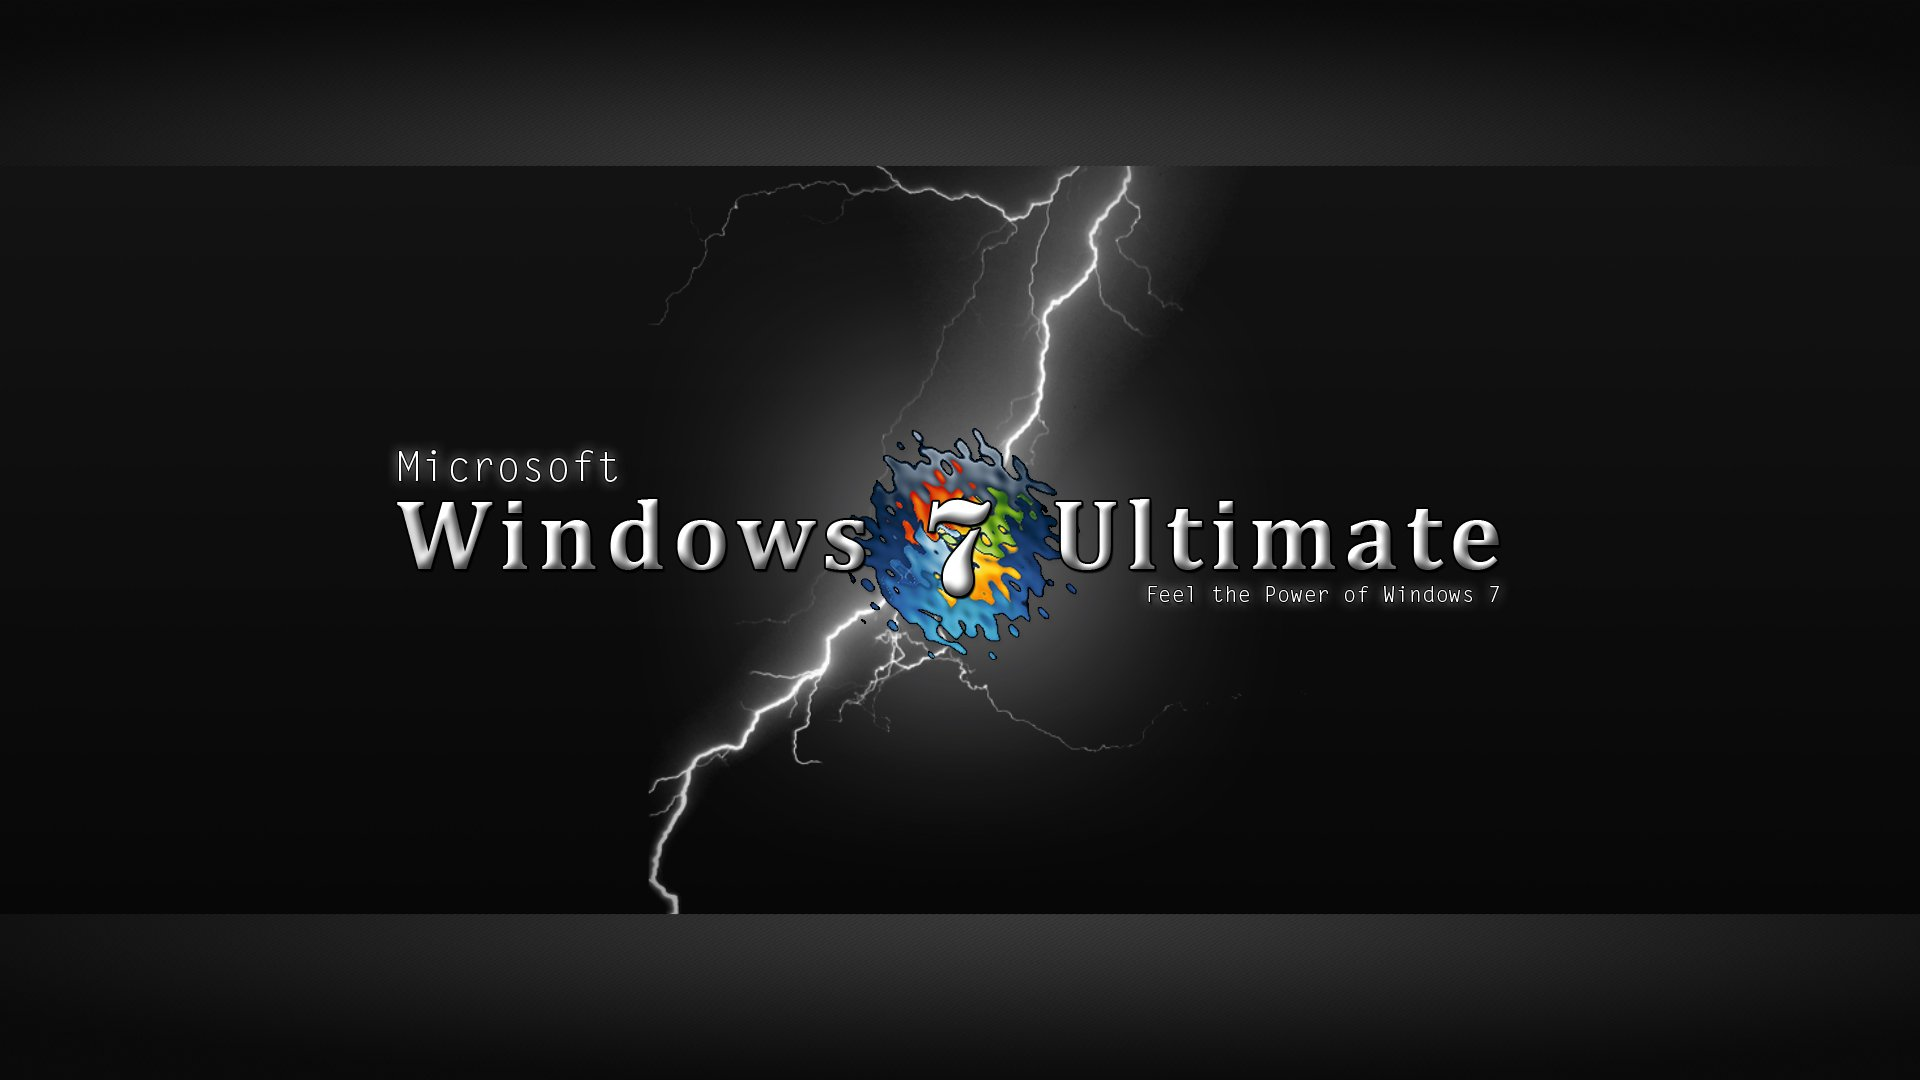 Windows 7 ultimate wallpaper 1920x1080 wallpapersafari for Window 7 ultimate